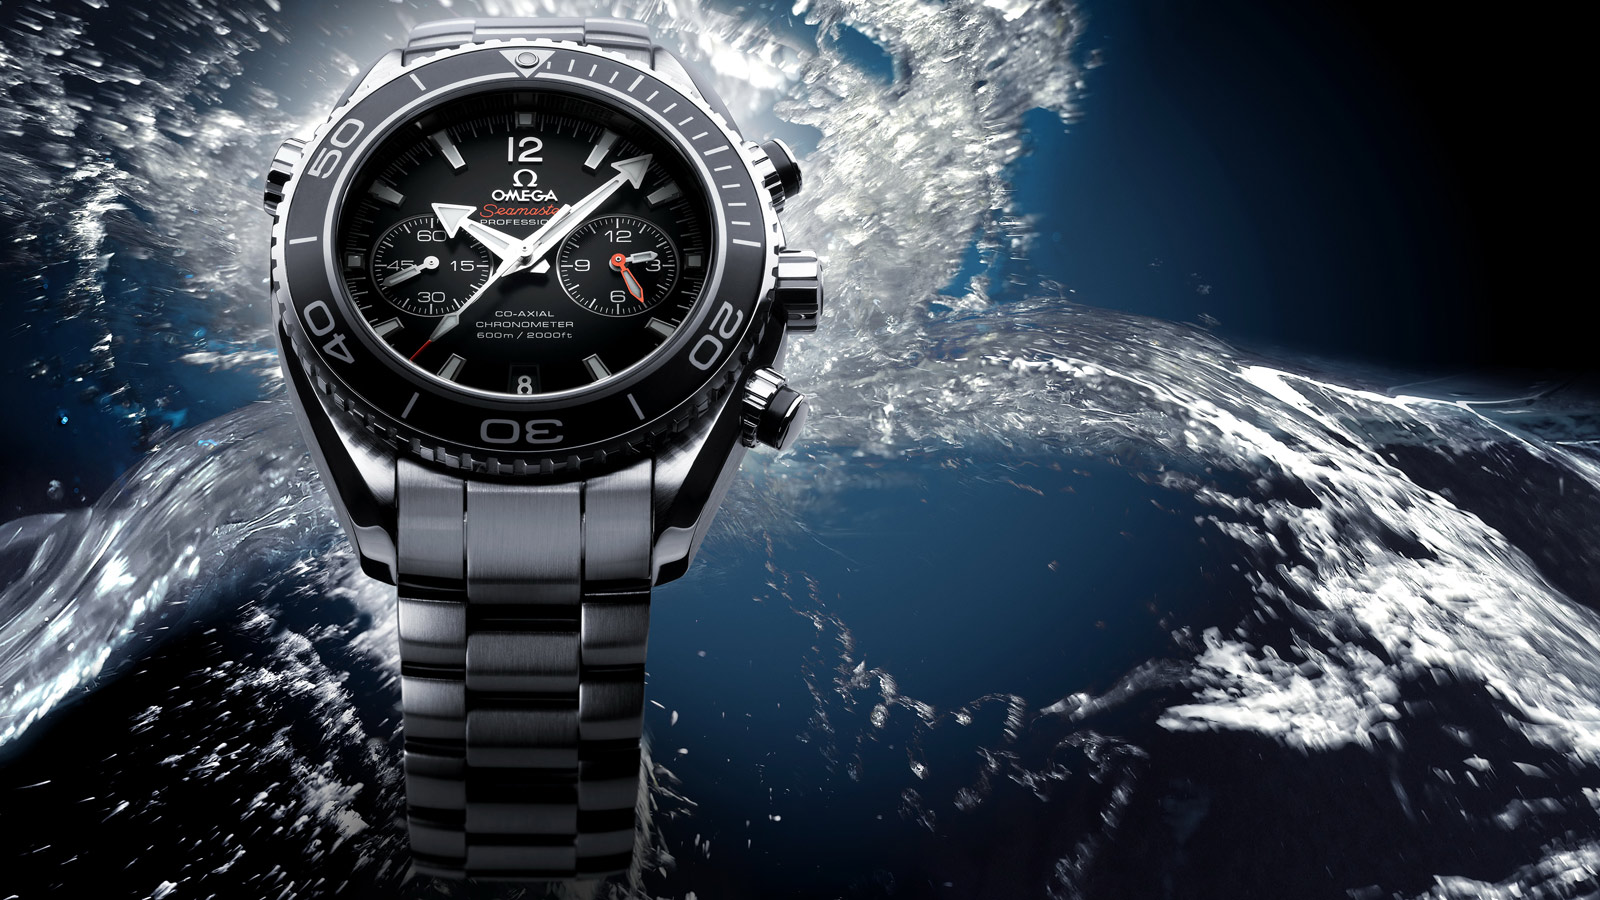 Seamaster プラネットオーシャン Planet Ocean 600M Omega Co‑Axial Chronograph 45.5 mm - 232.30.46.51.01.001 - ビュー 3